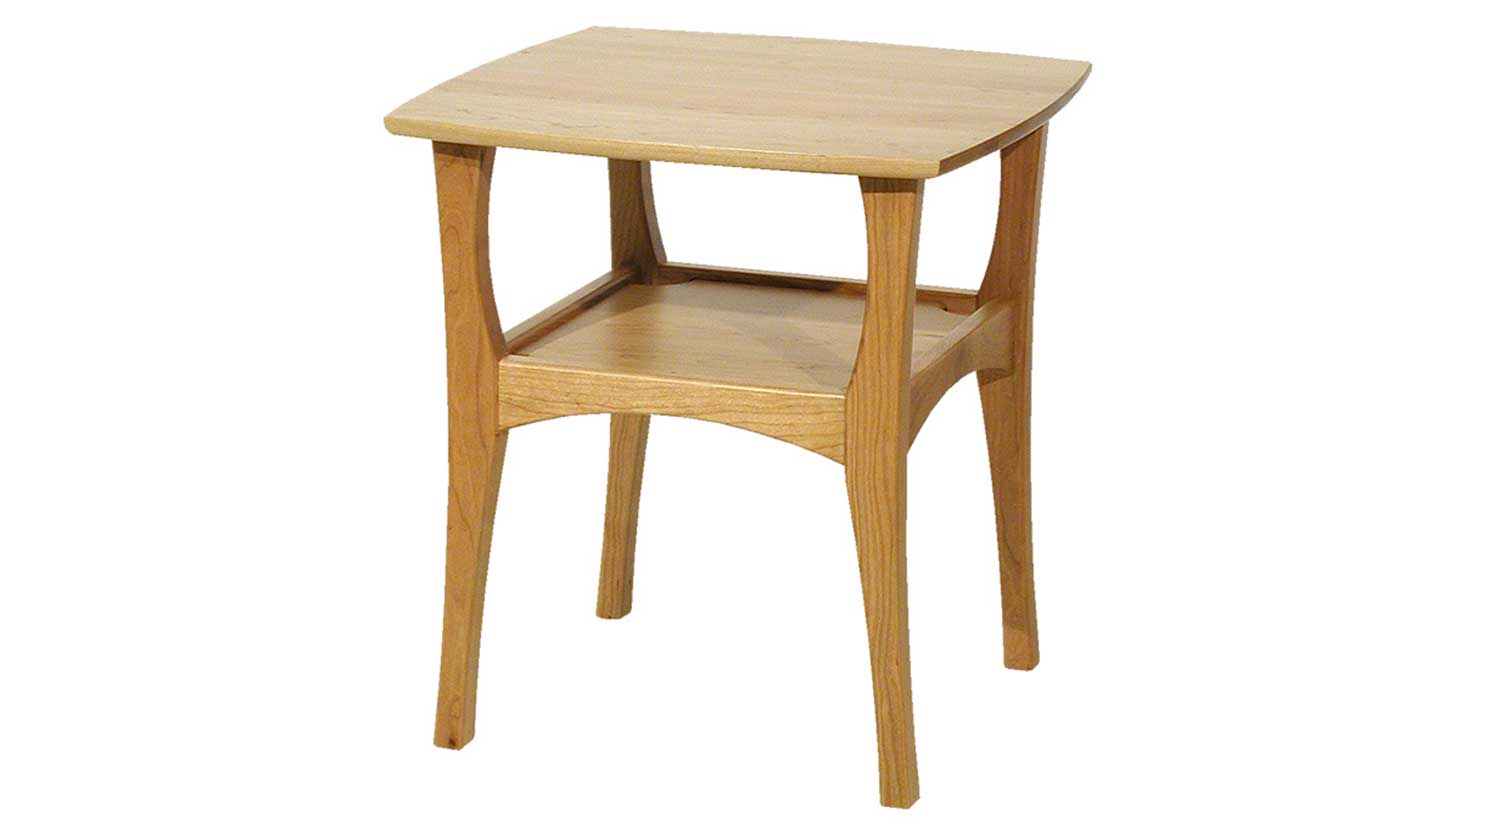 circle furniture verdana square end table wood accent tables small occasional chairs timber brisbane marble top pub set round cherry hairpin bedside mainstays coffee white drop